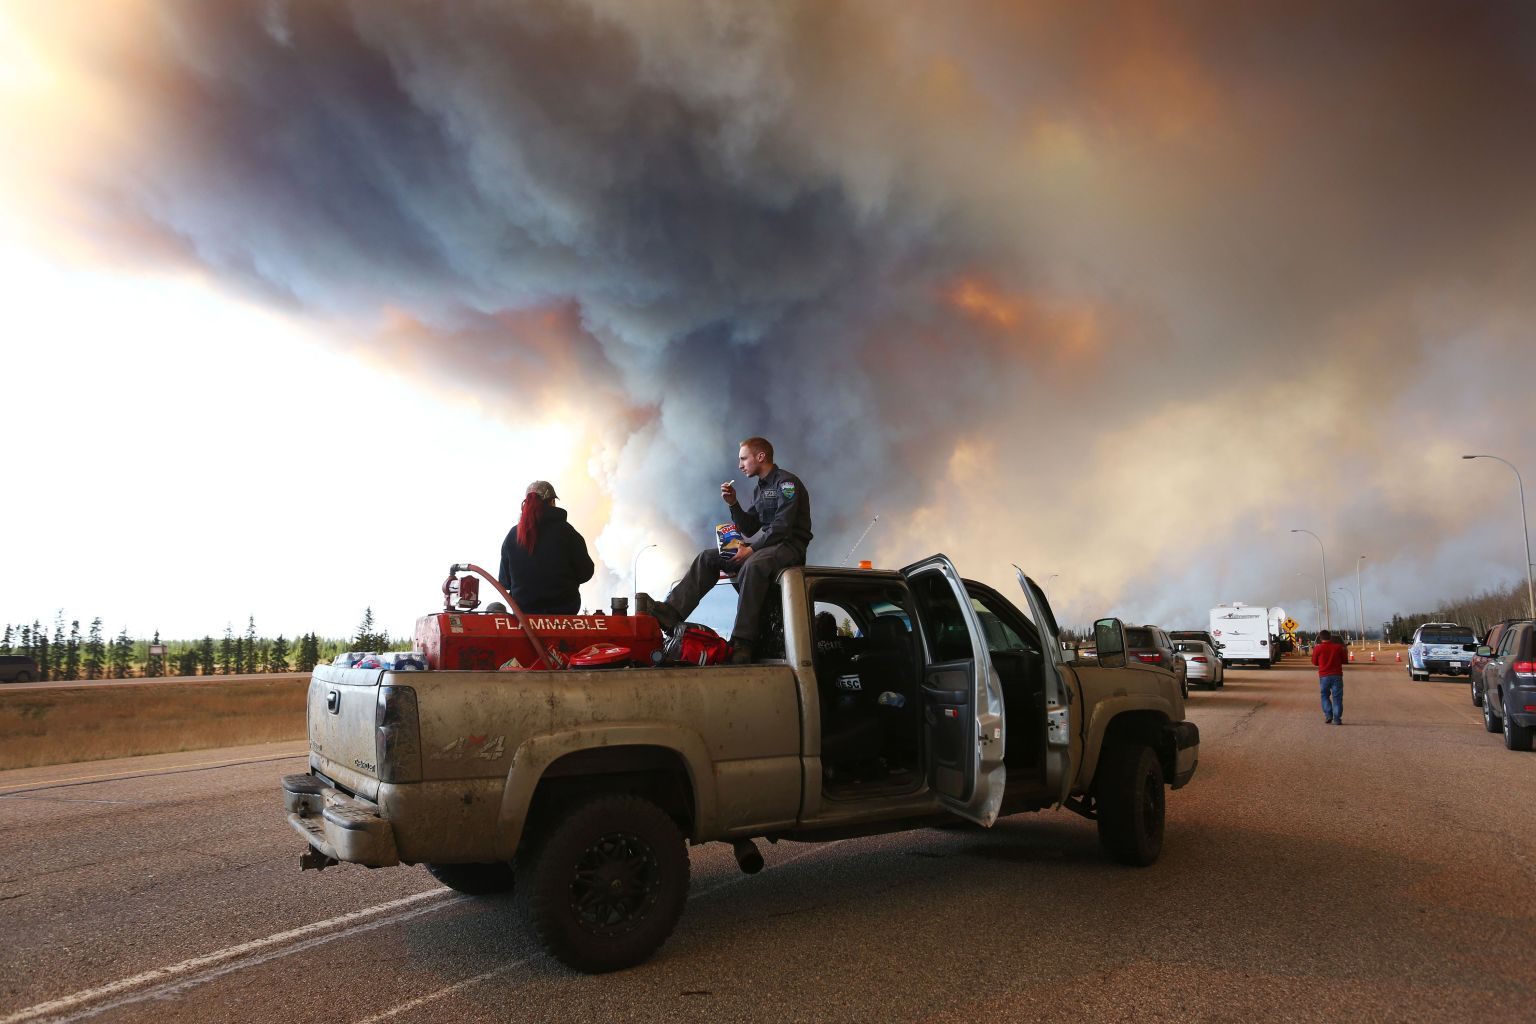 A group trying to rescue animals from Fort McMurray wait at road block on Highway 63 near as smoke rises from a forest fire near Fort McMurray, Alberta on May 6, 2016. Canadian police led convoys of cars through the burning ghost town of Fort McMurray Friday in a risky operation to get people to safety far to the south.In the latest chapter of the drama triggered by monster fires in Alberta's oil sands region, the convoys of 50 cars at a time are driving through the city at about 50-60 kilometers per hour (30-40 miles per hour) TV footage showed. / AFP / Cole Burston/ (Photo credit should read COLE BURSTON//AFP/Getty Images)